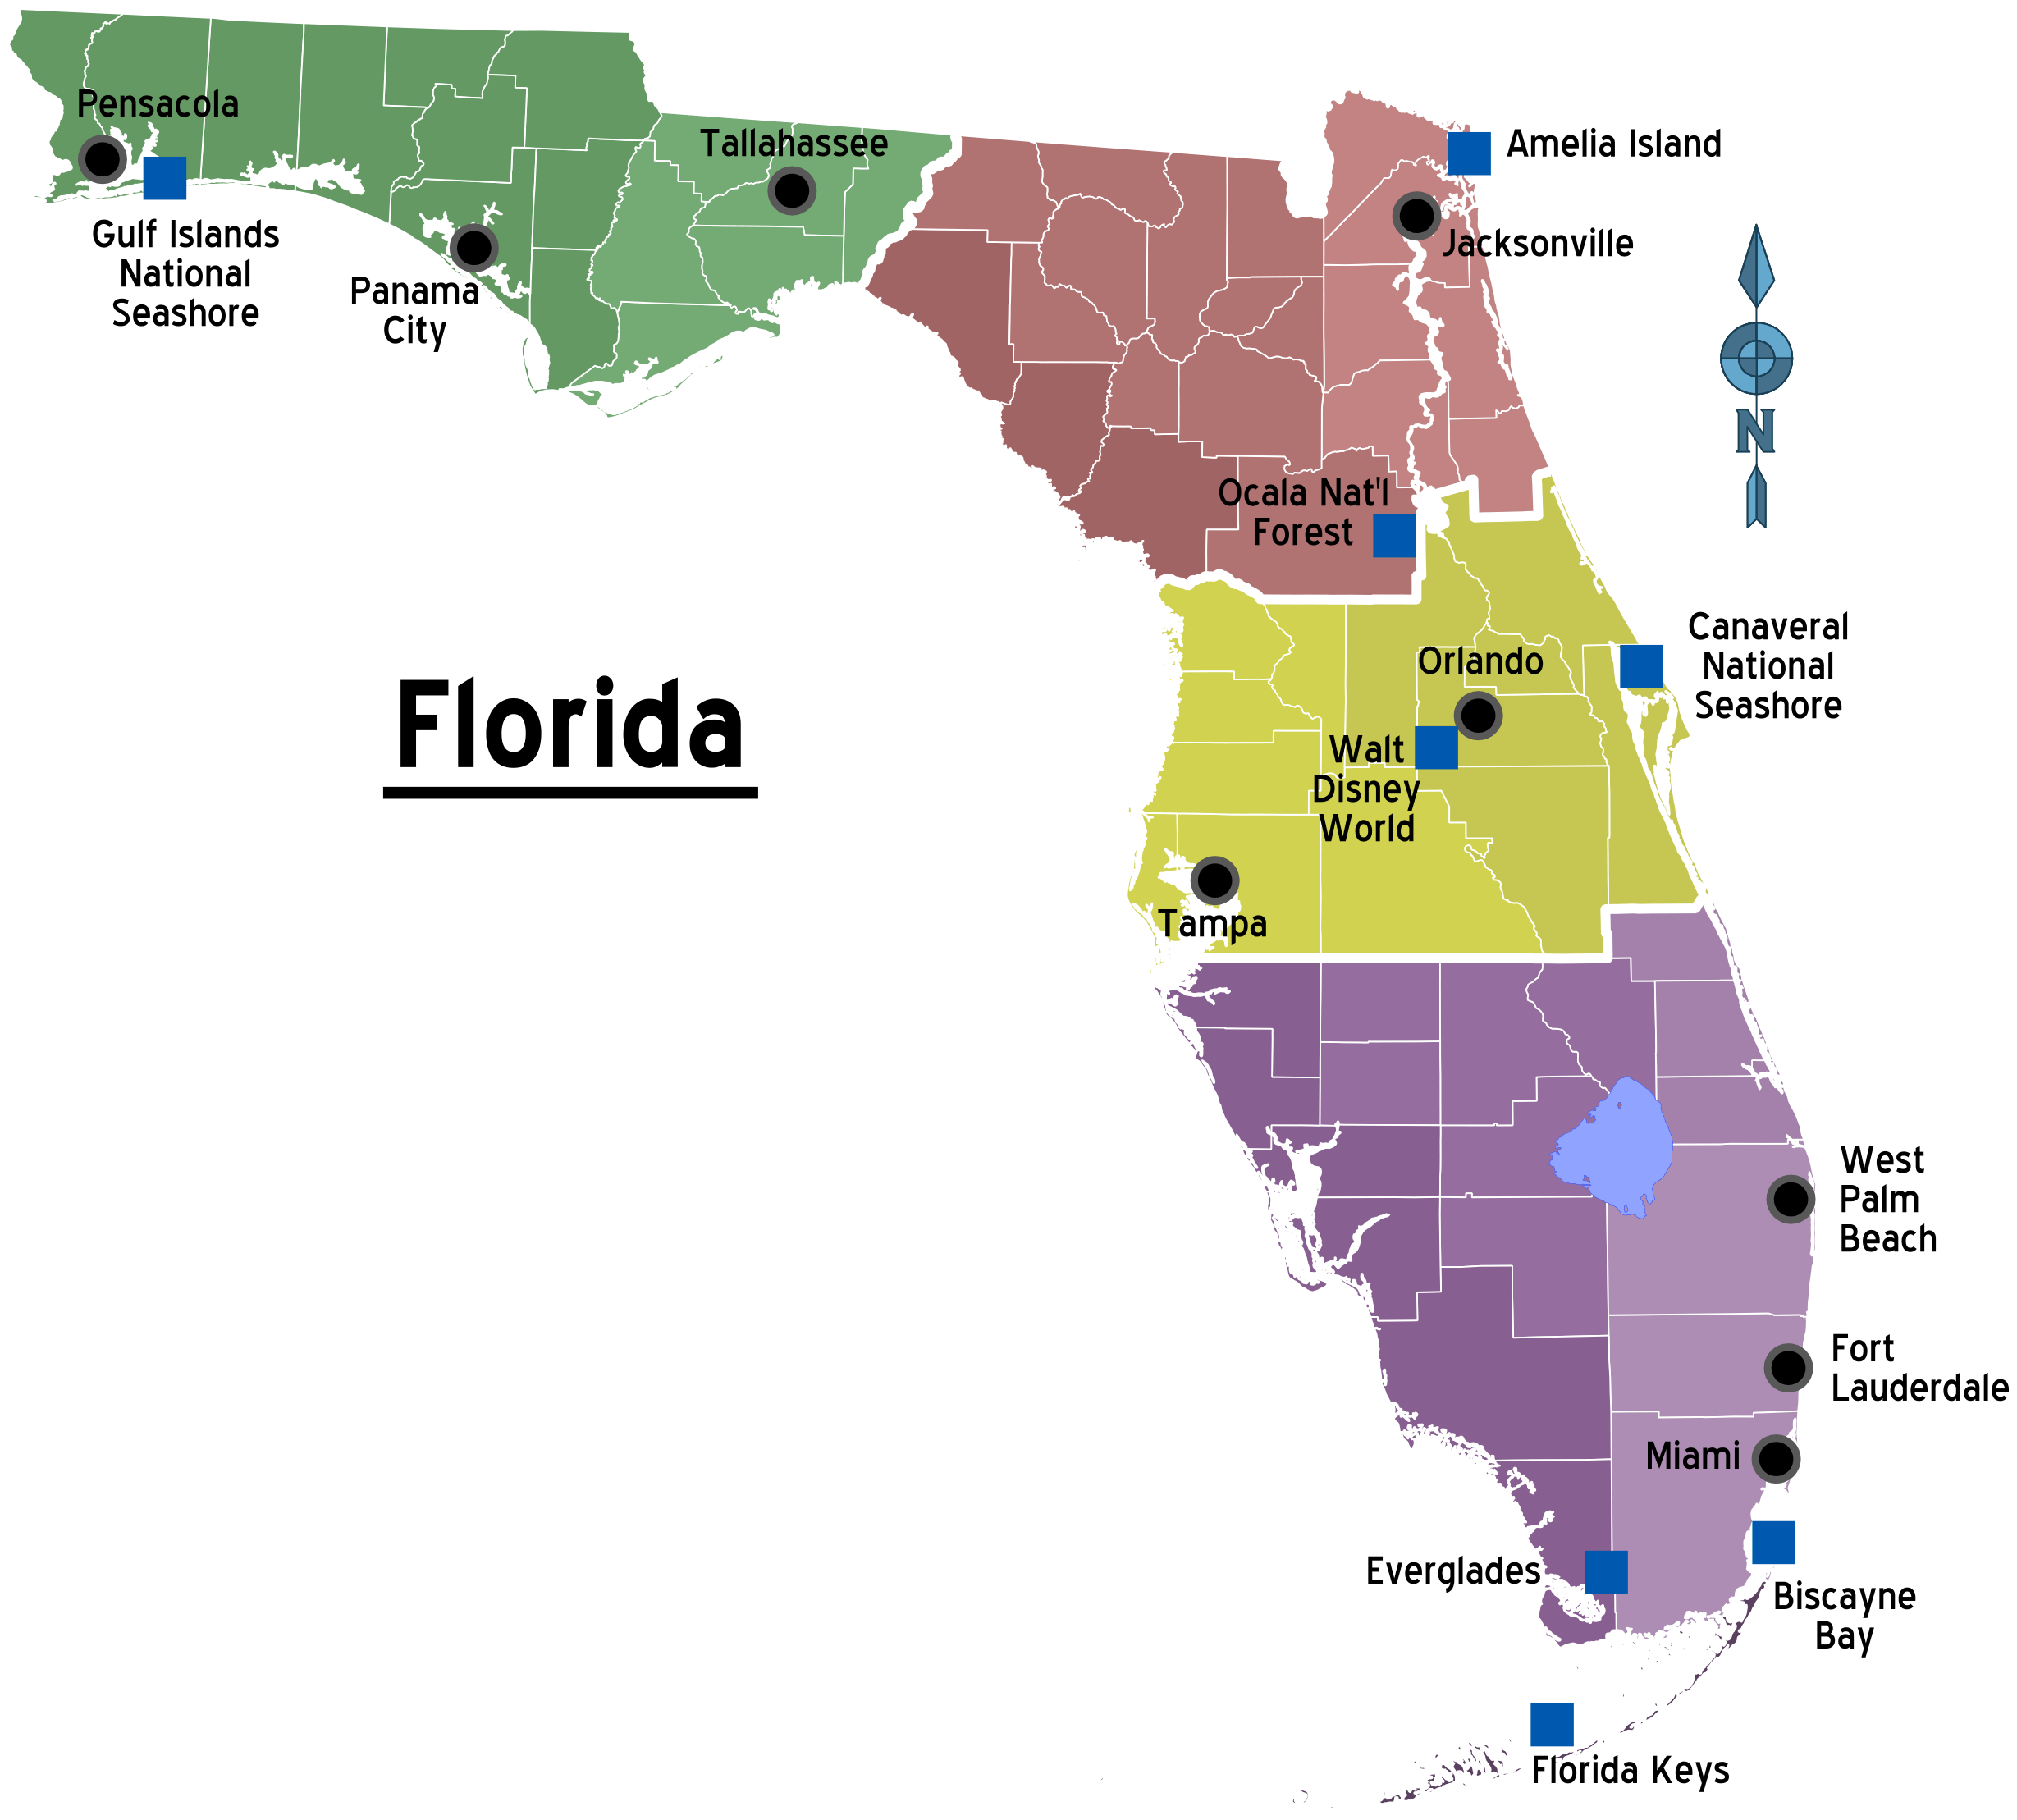 Florida Regions Map With Cities Mapsofnet - Map of cities in florida